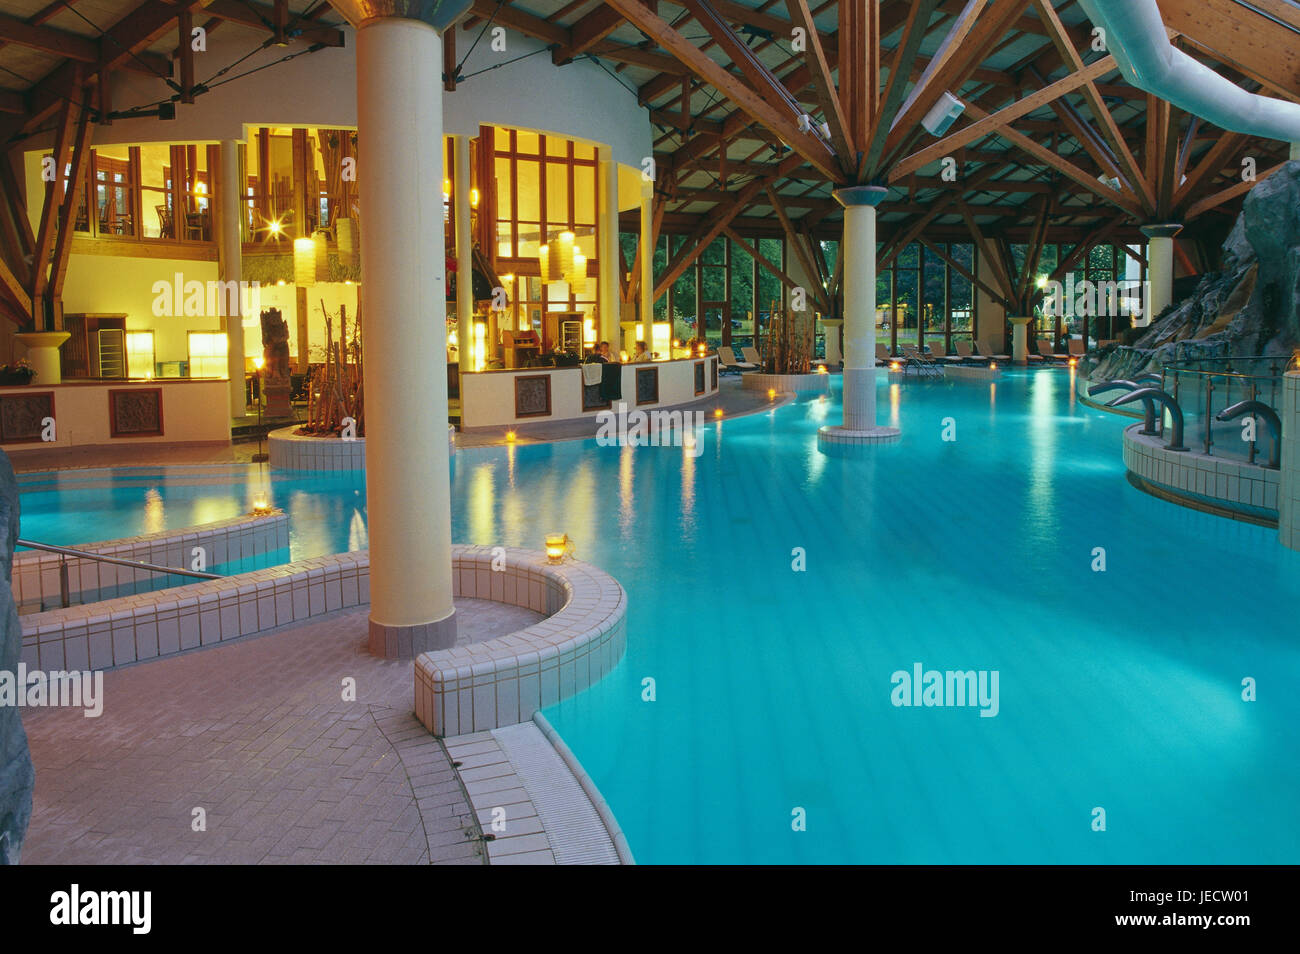 Arcadia Hotel Bad Oeynhausen Bali-Therme